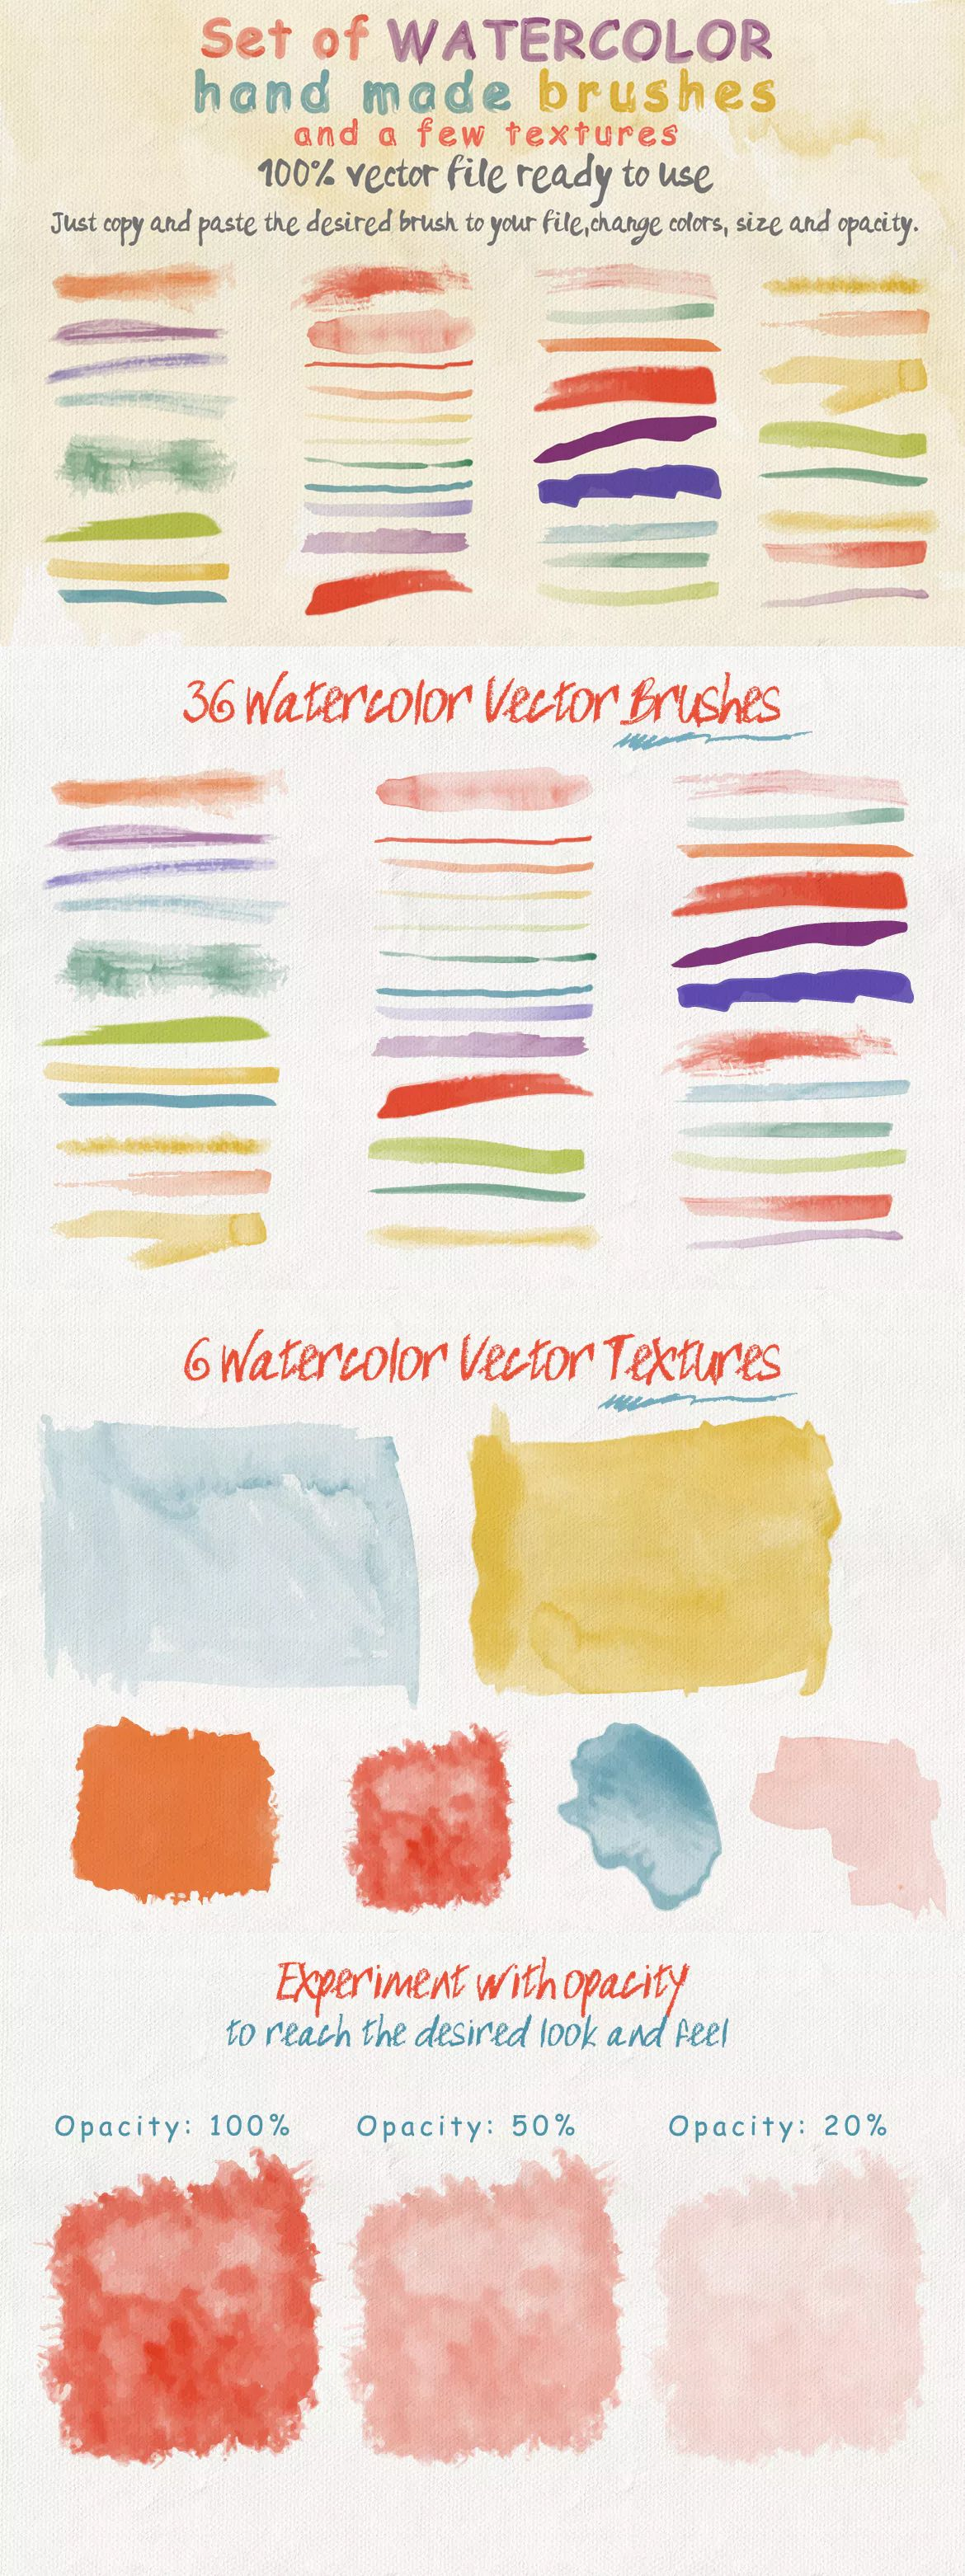 Set Of Watercolor Brushes And Textures For Photoshop Watercolor